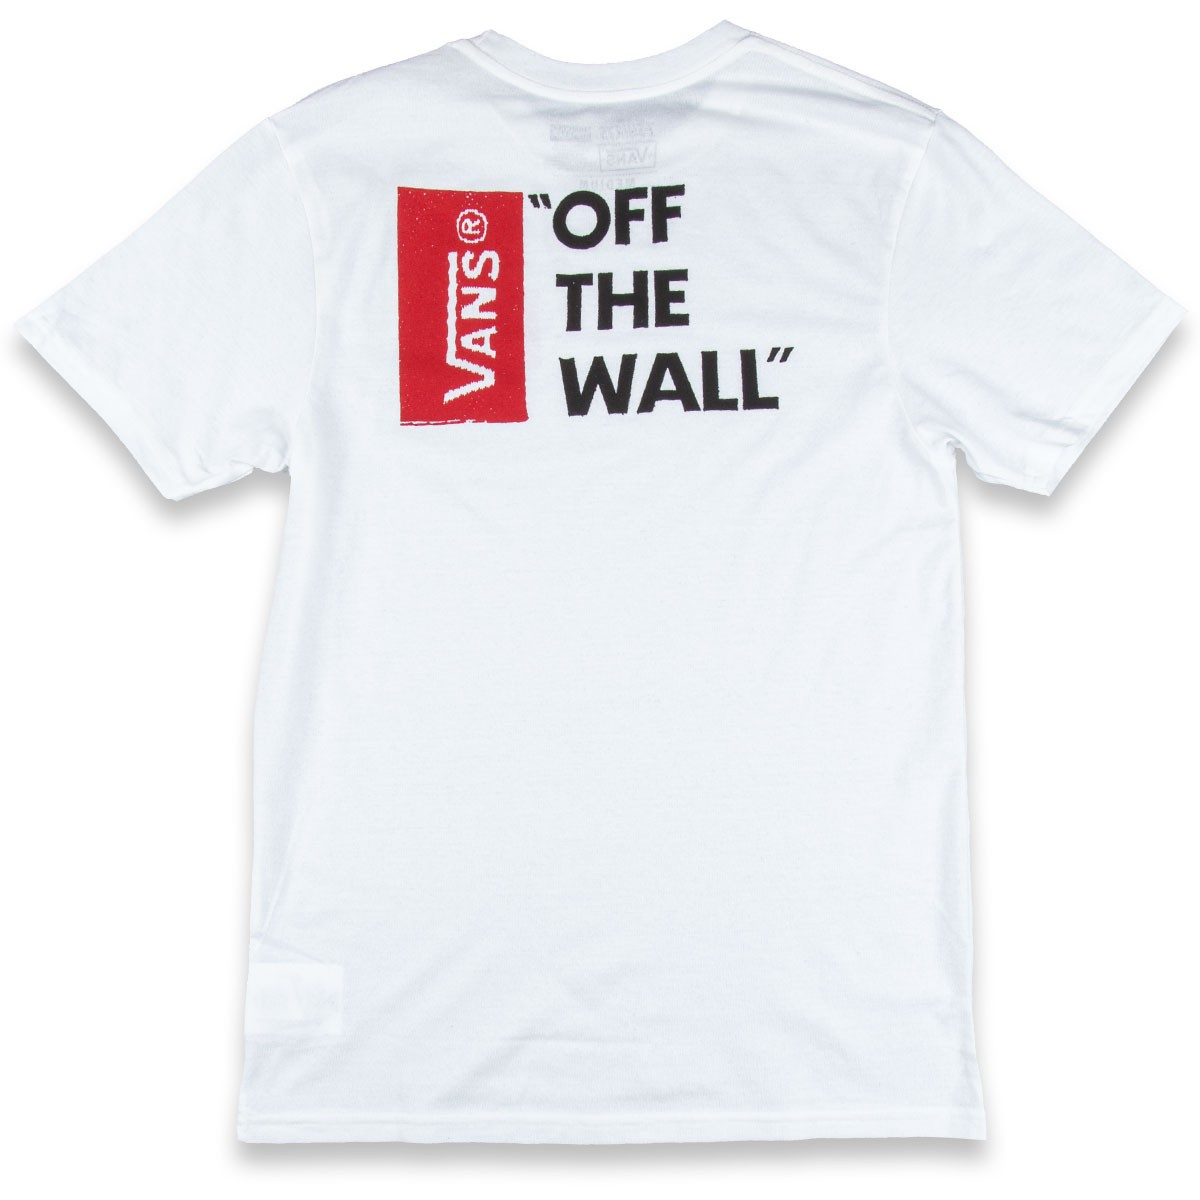 off the wall vans shirt